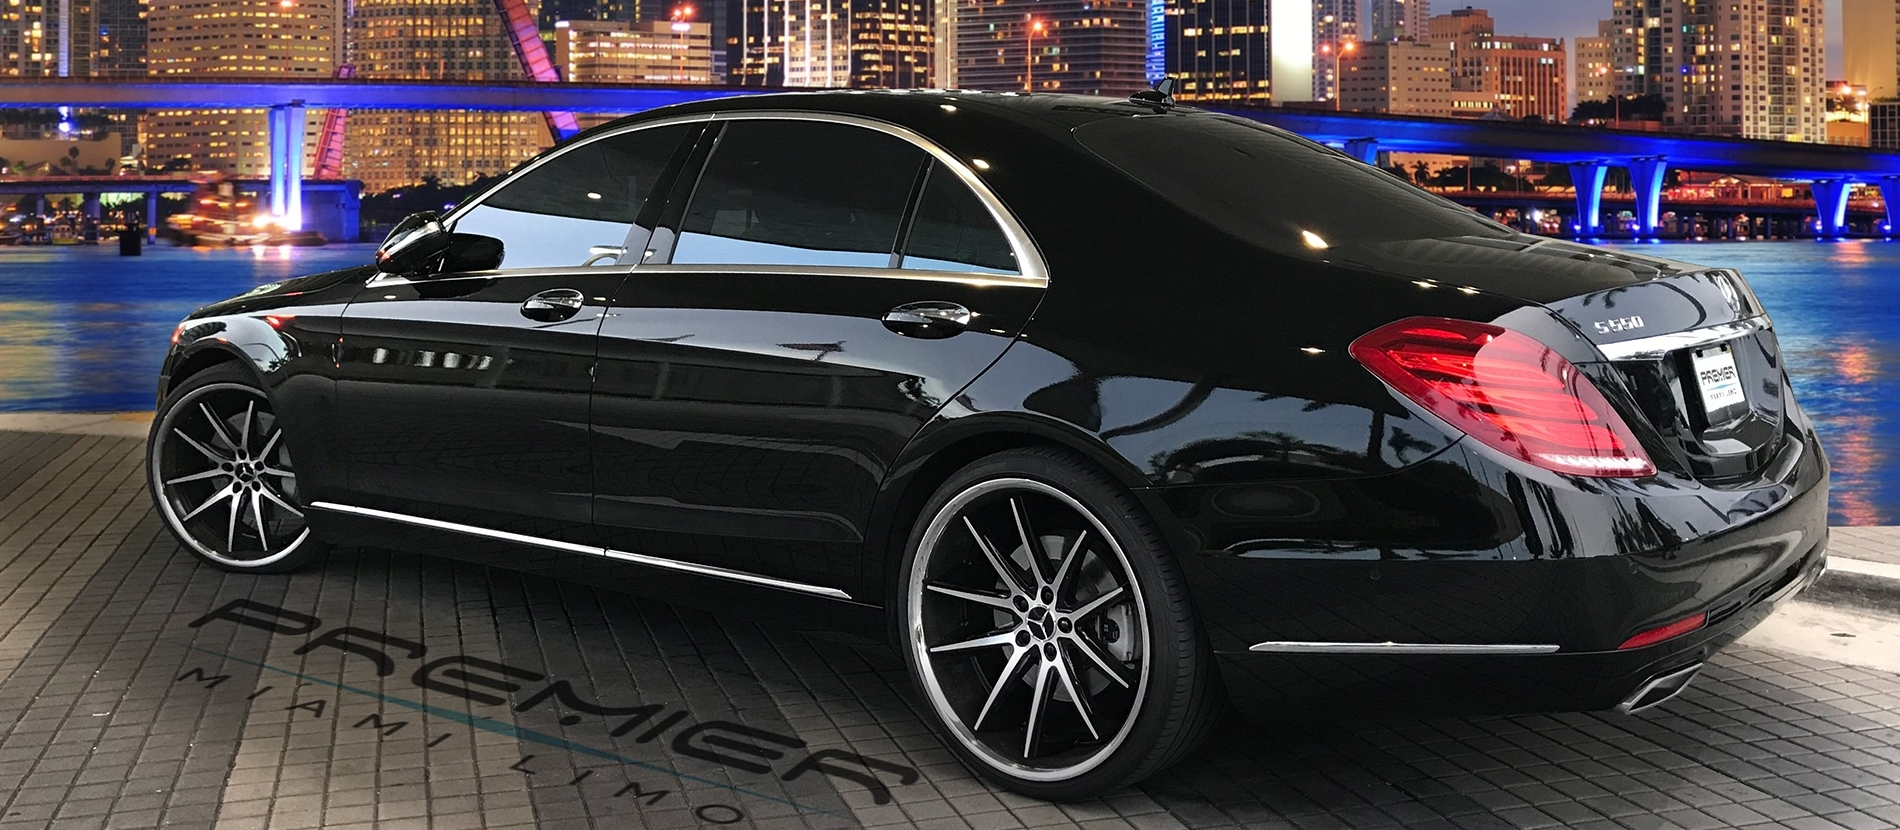 Miami limo service car service miami all inclusive rates for Mercedes benz service miami